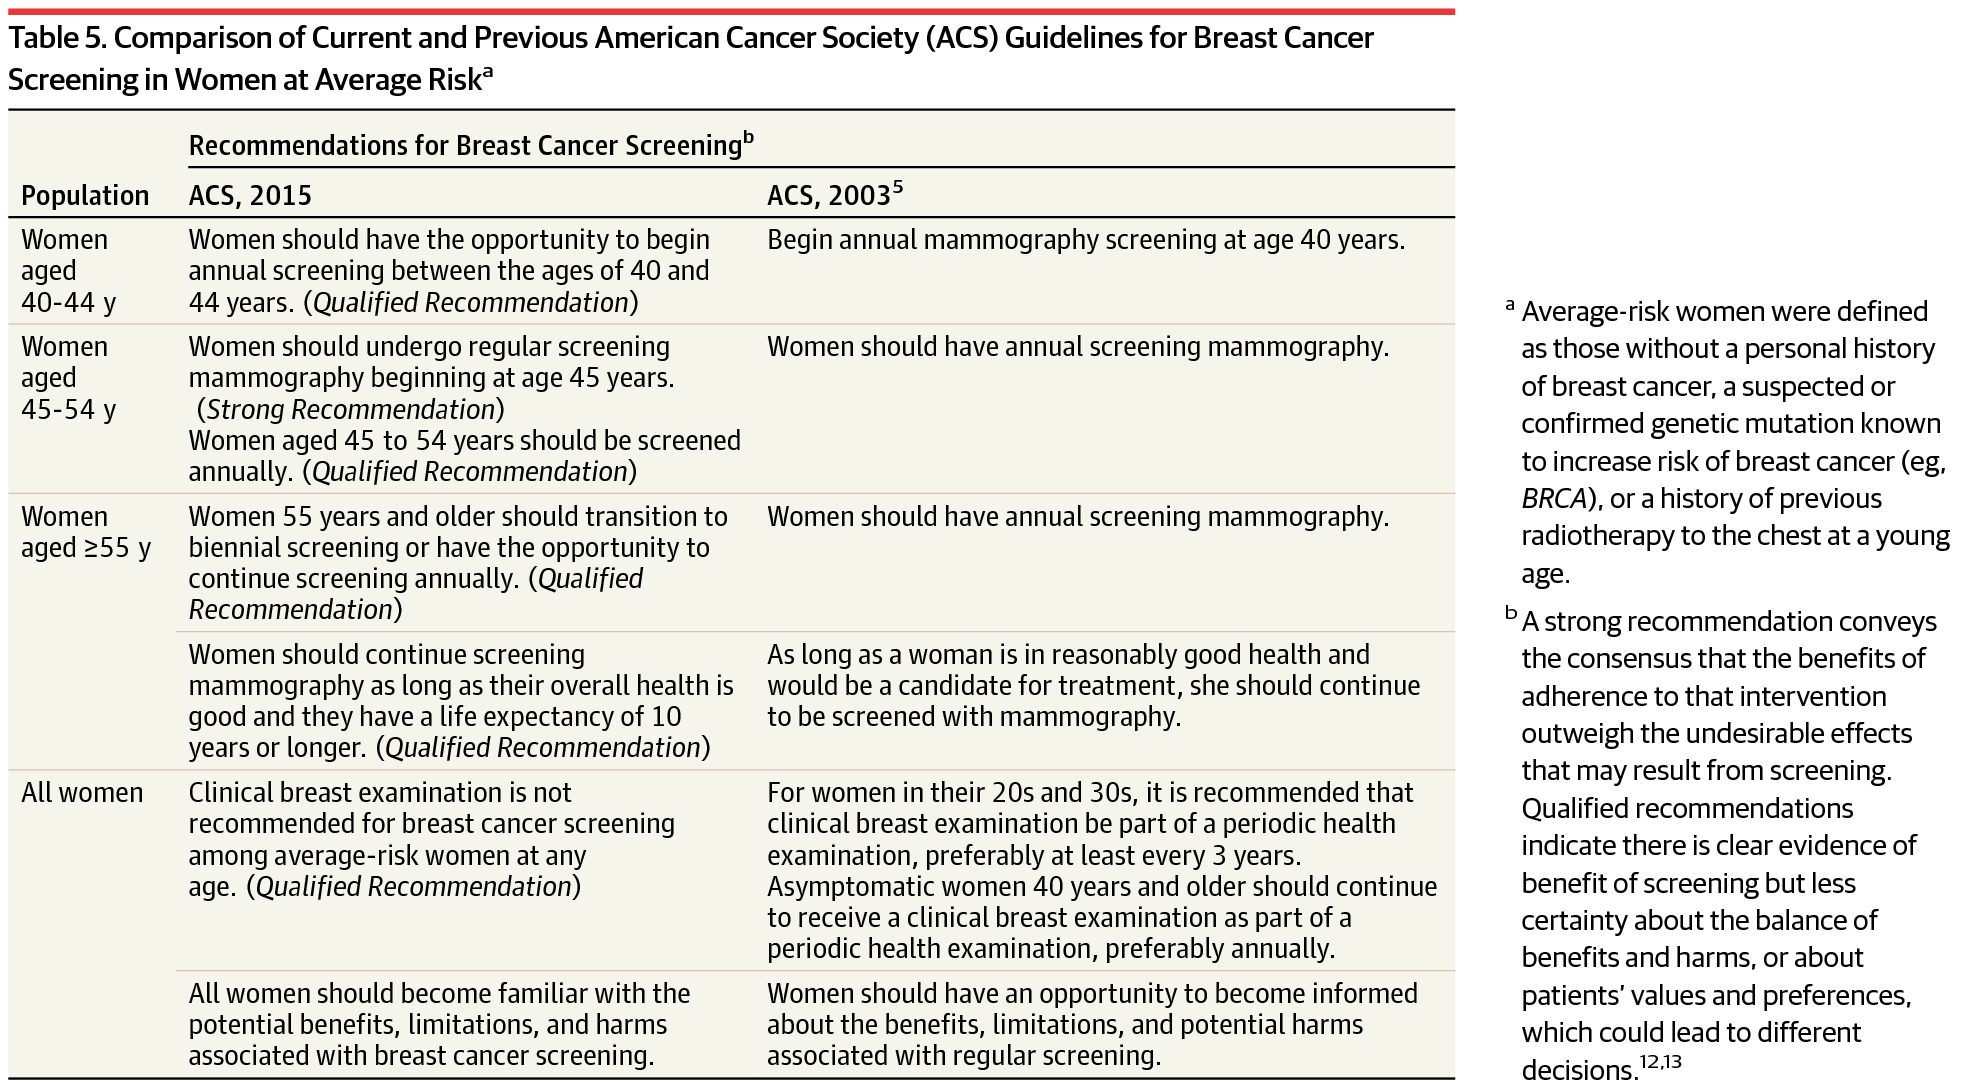 Comparison of Current and Previous American Cancer Society (ACS) Guidelines  for Breast Cancer Screening